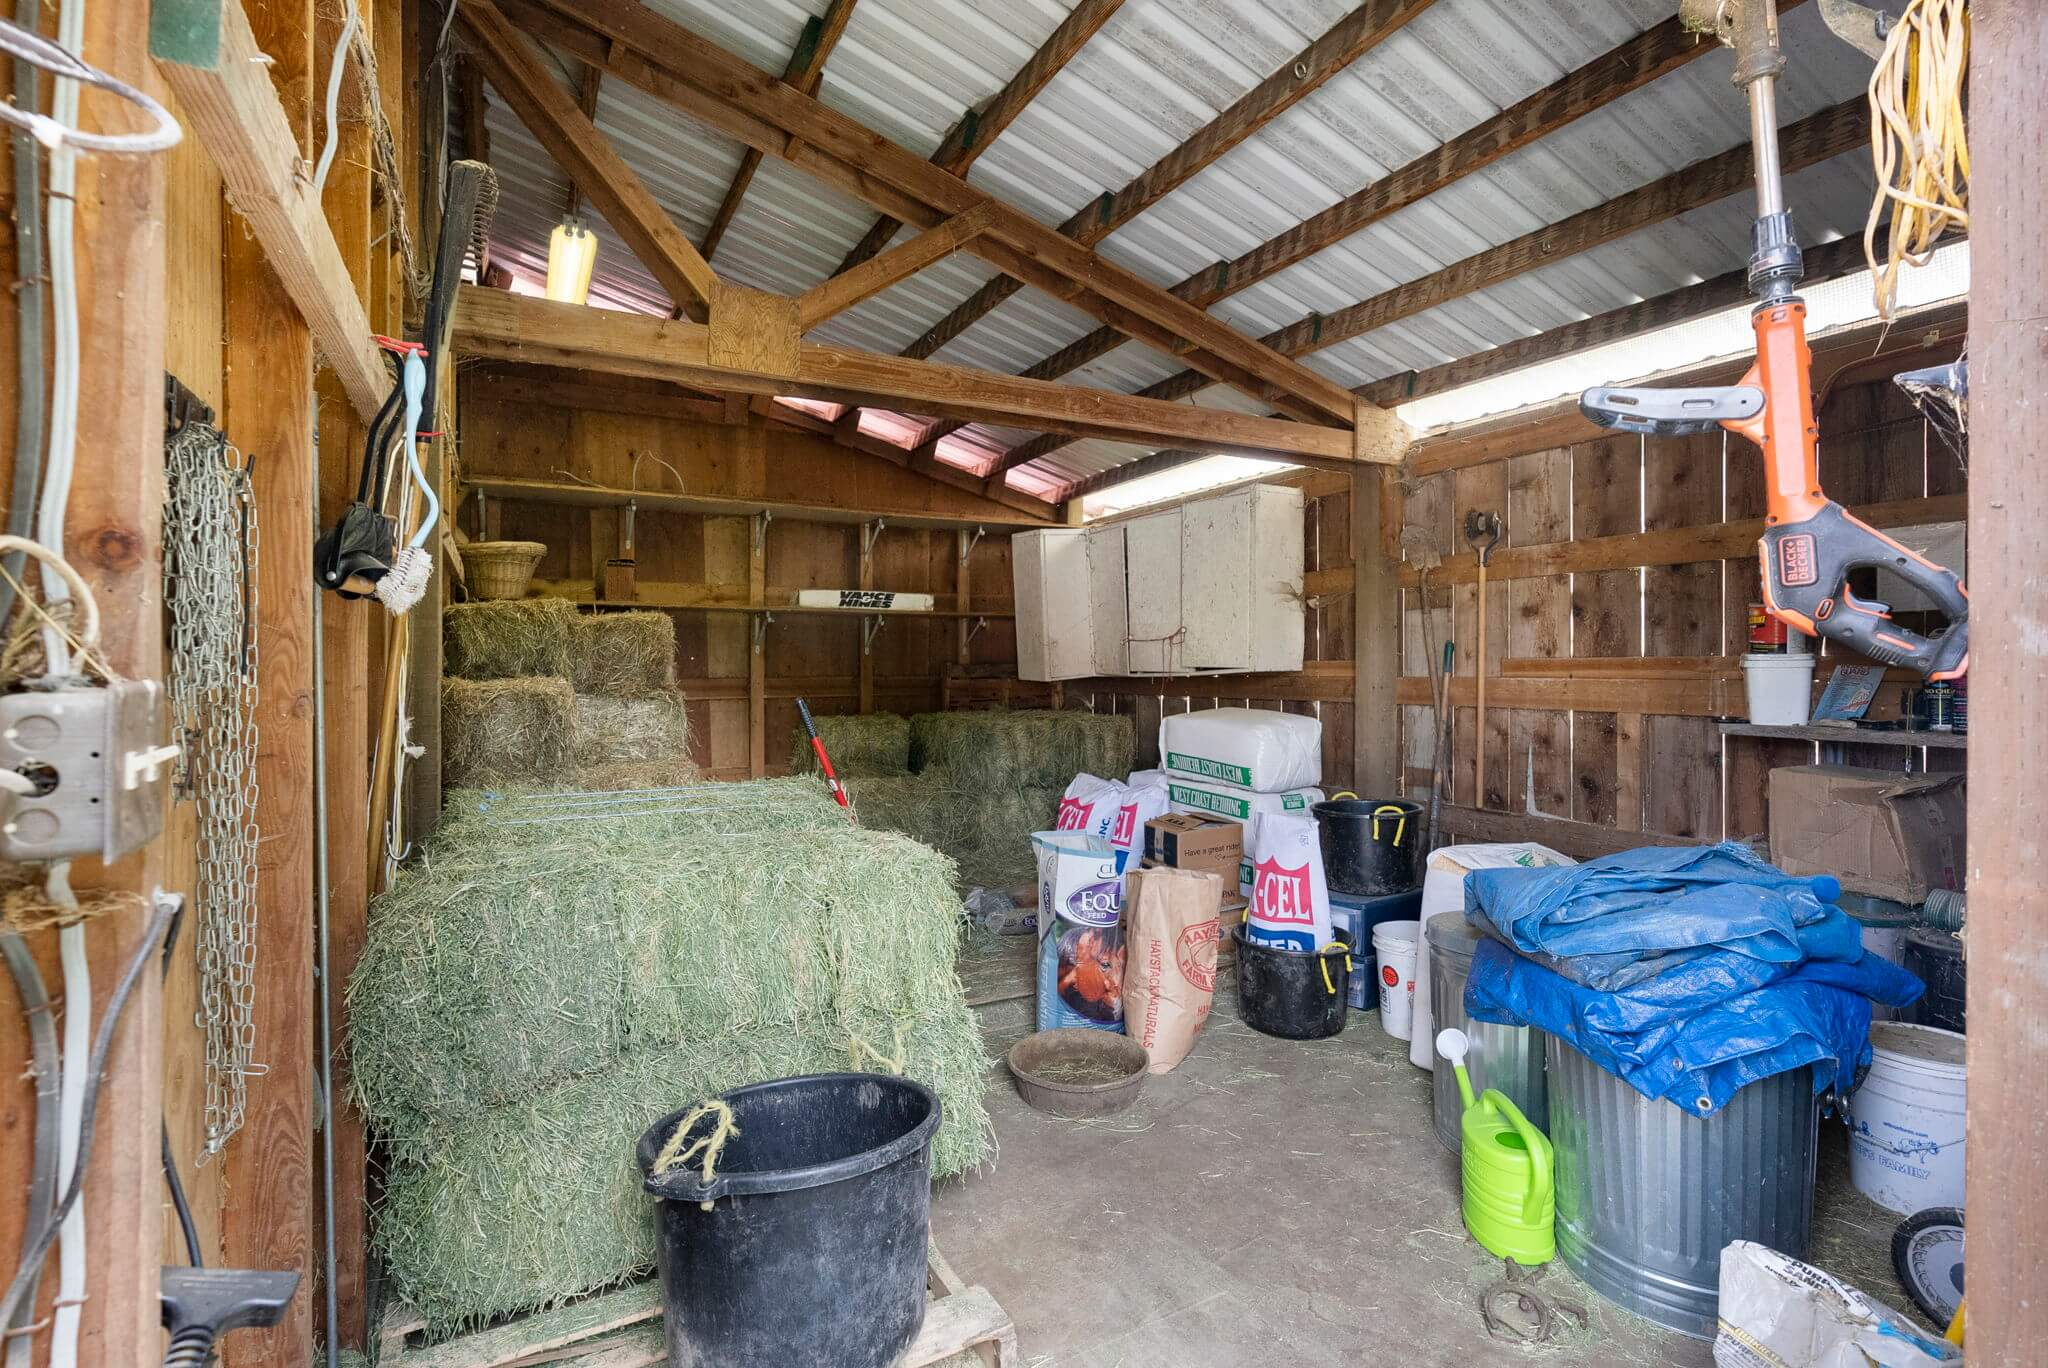 Each smaller barn has its own feed and tack room